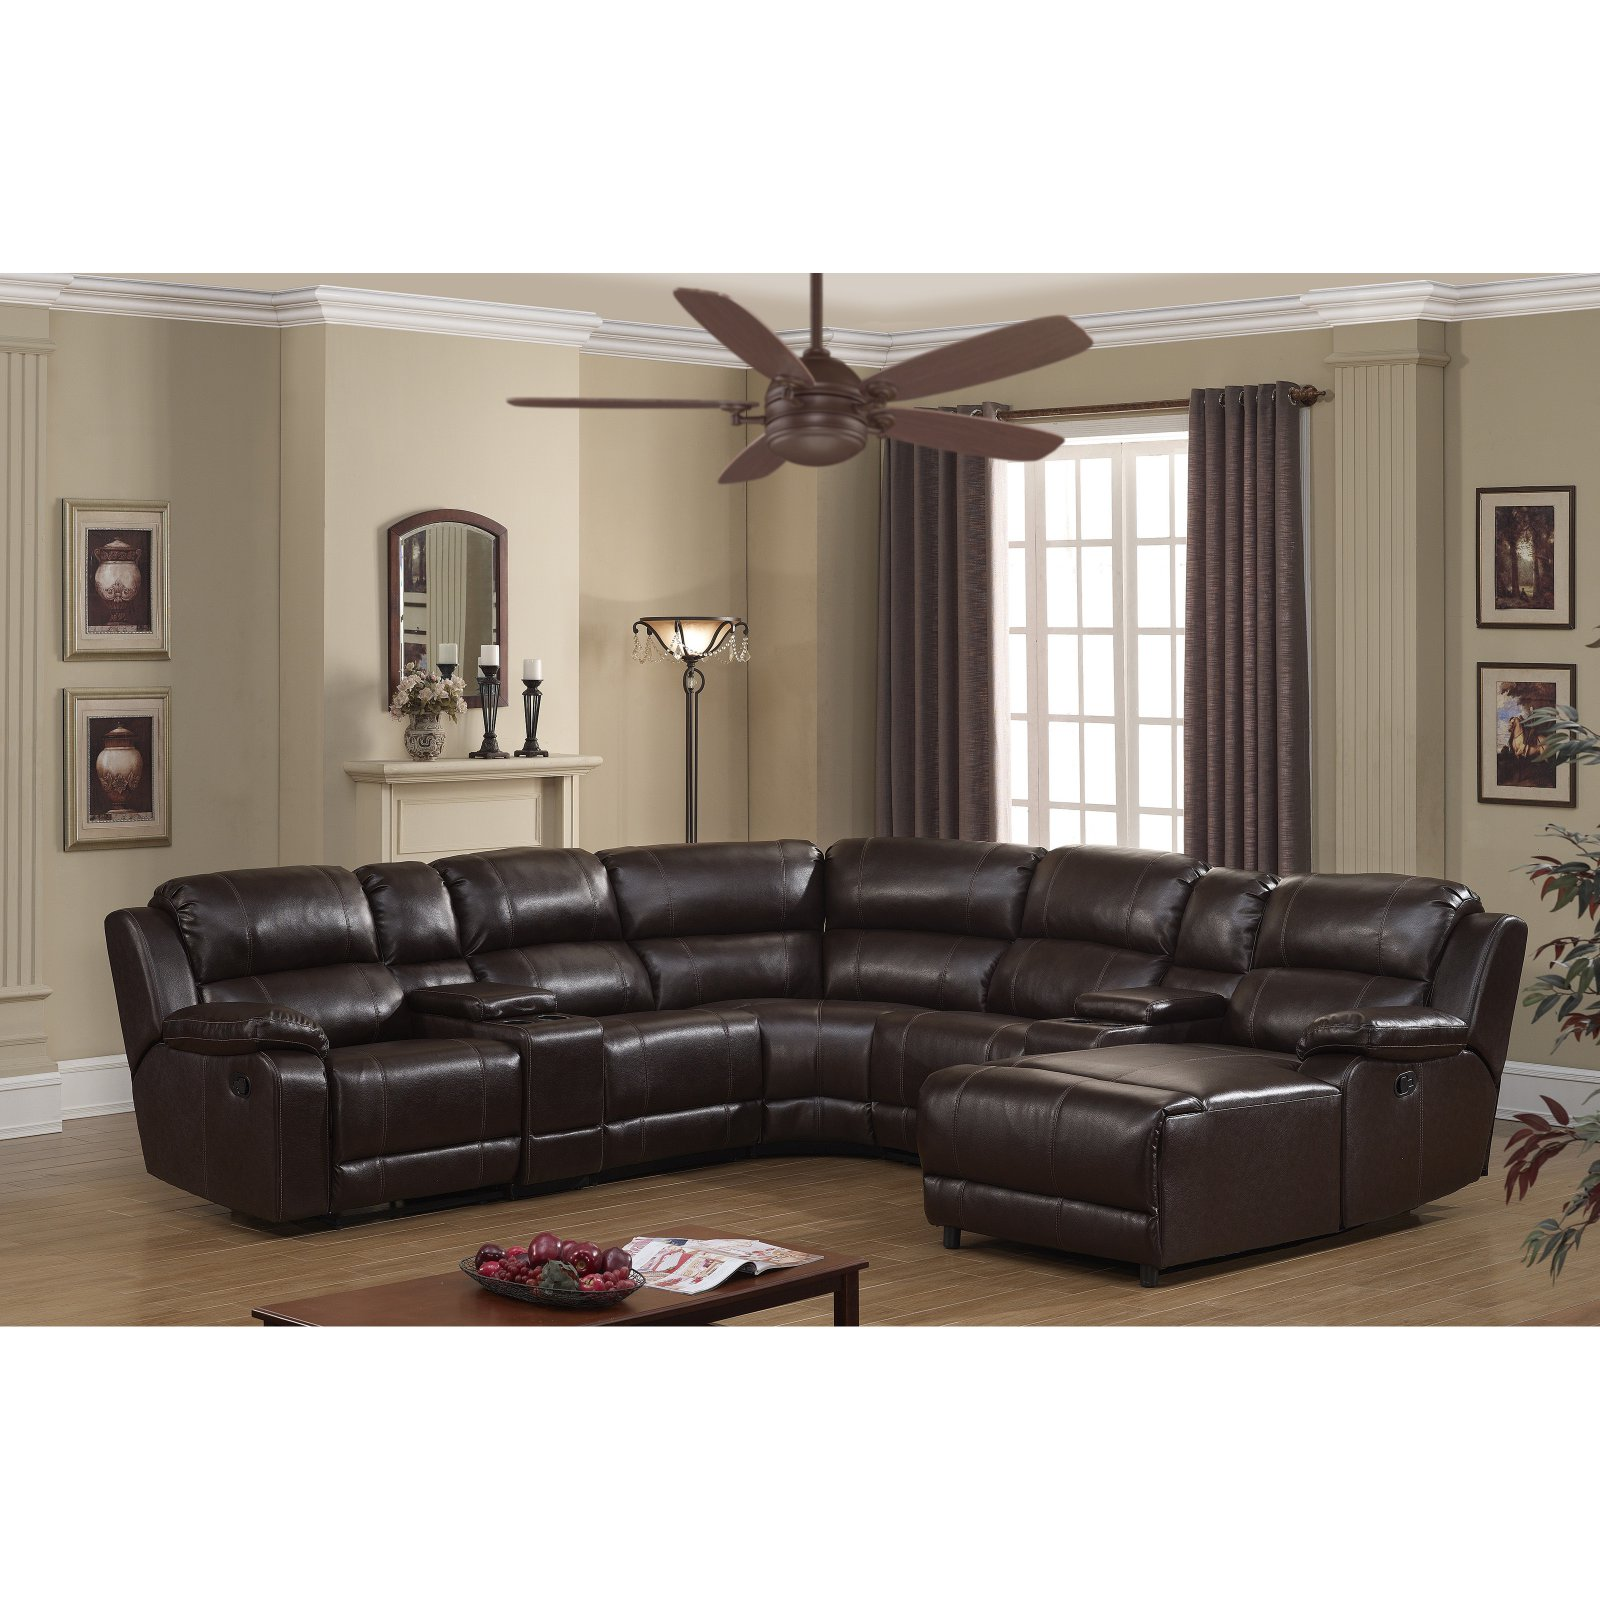 Christies Home Living 7 Piece Living Room Reclining Sectional Sofa